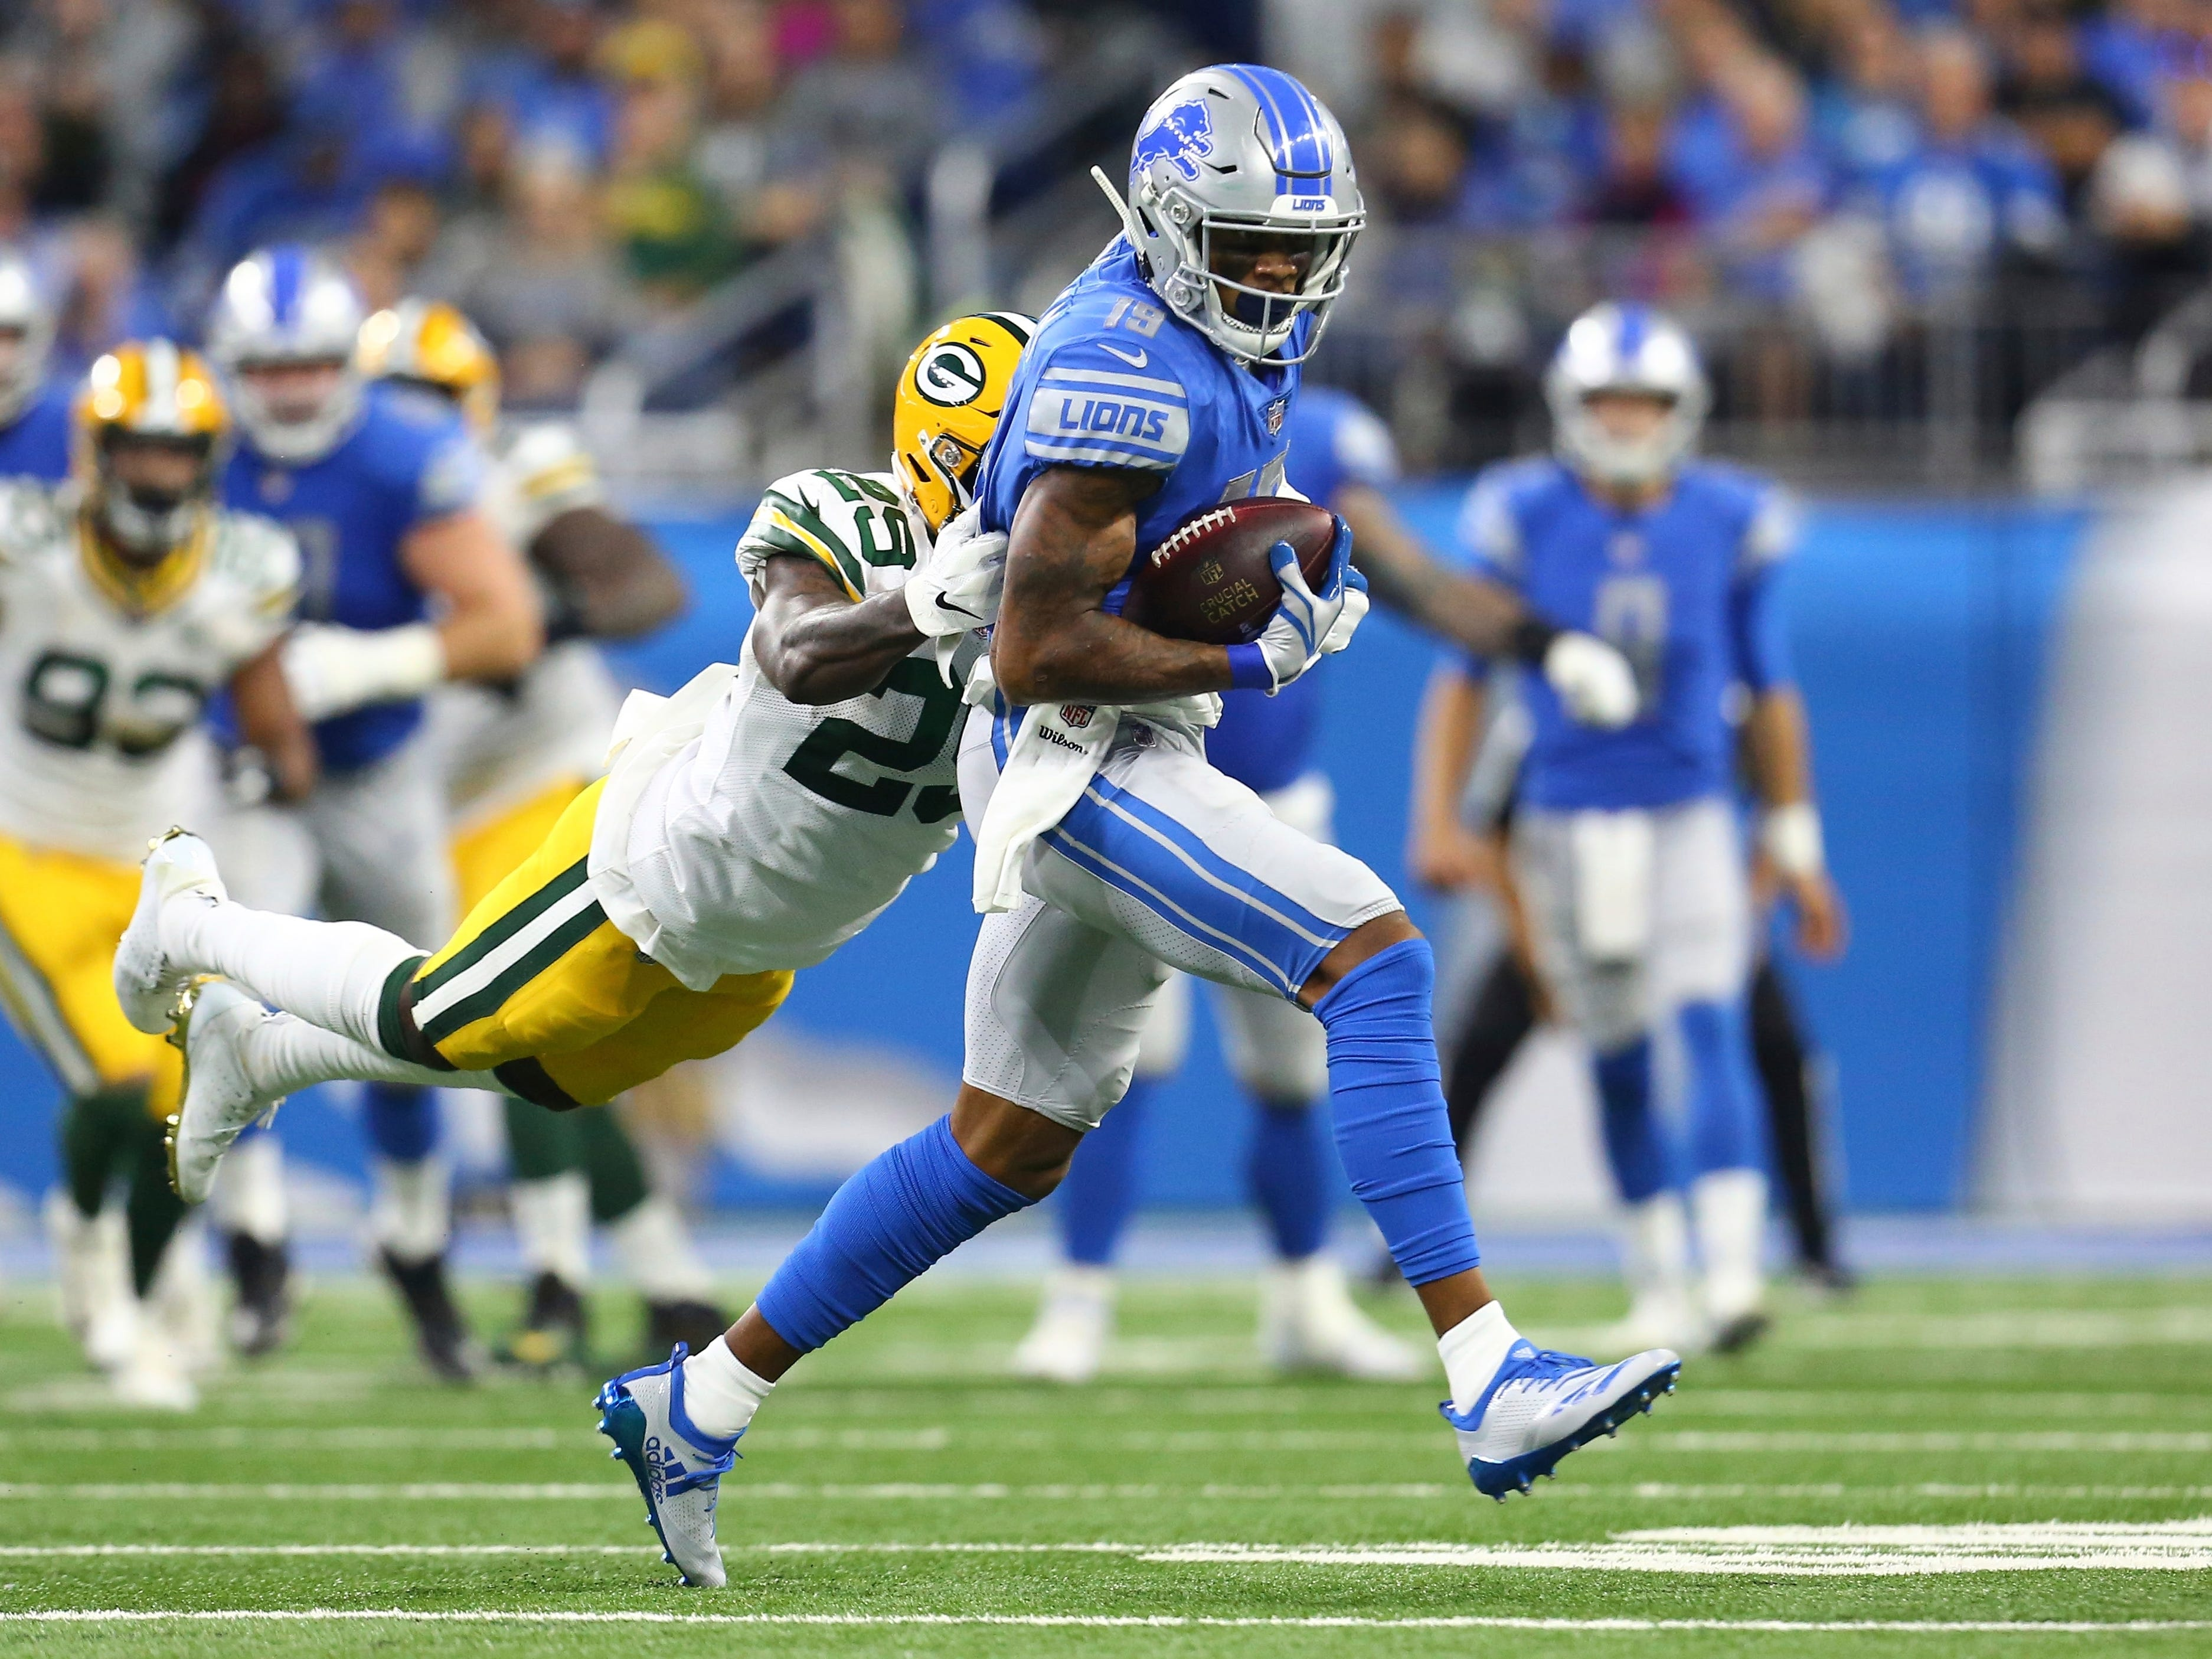 Detroit Lions wide receiver Kenny Golladay (19) pulls away from Green Bay Packers strong safety Kentrell Brice (29) during the first half of an NFL football game, Sunday, Oct. 7, 2018, in Detroit.